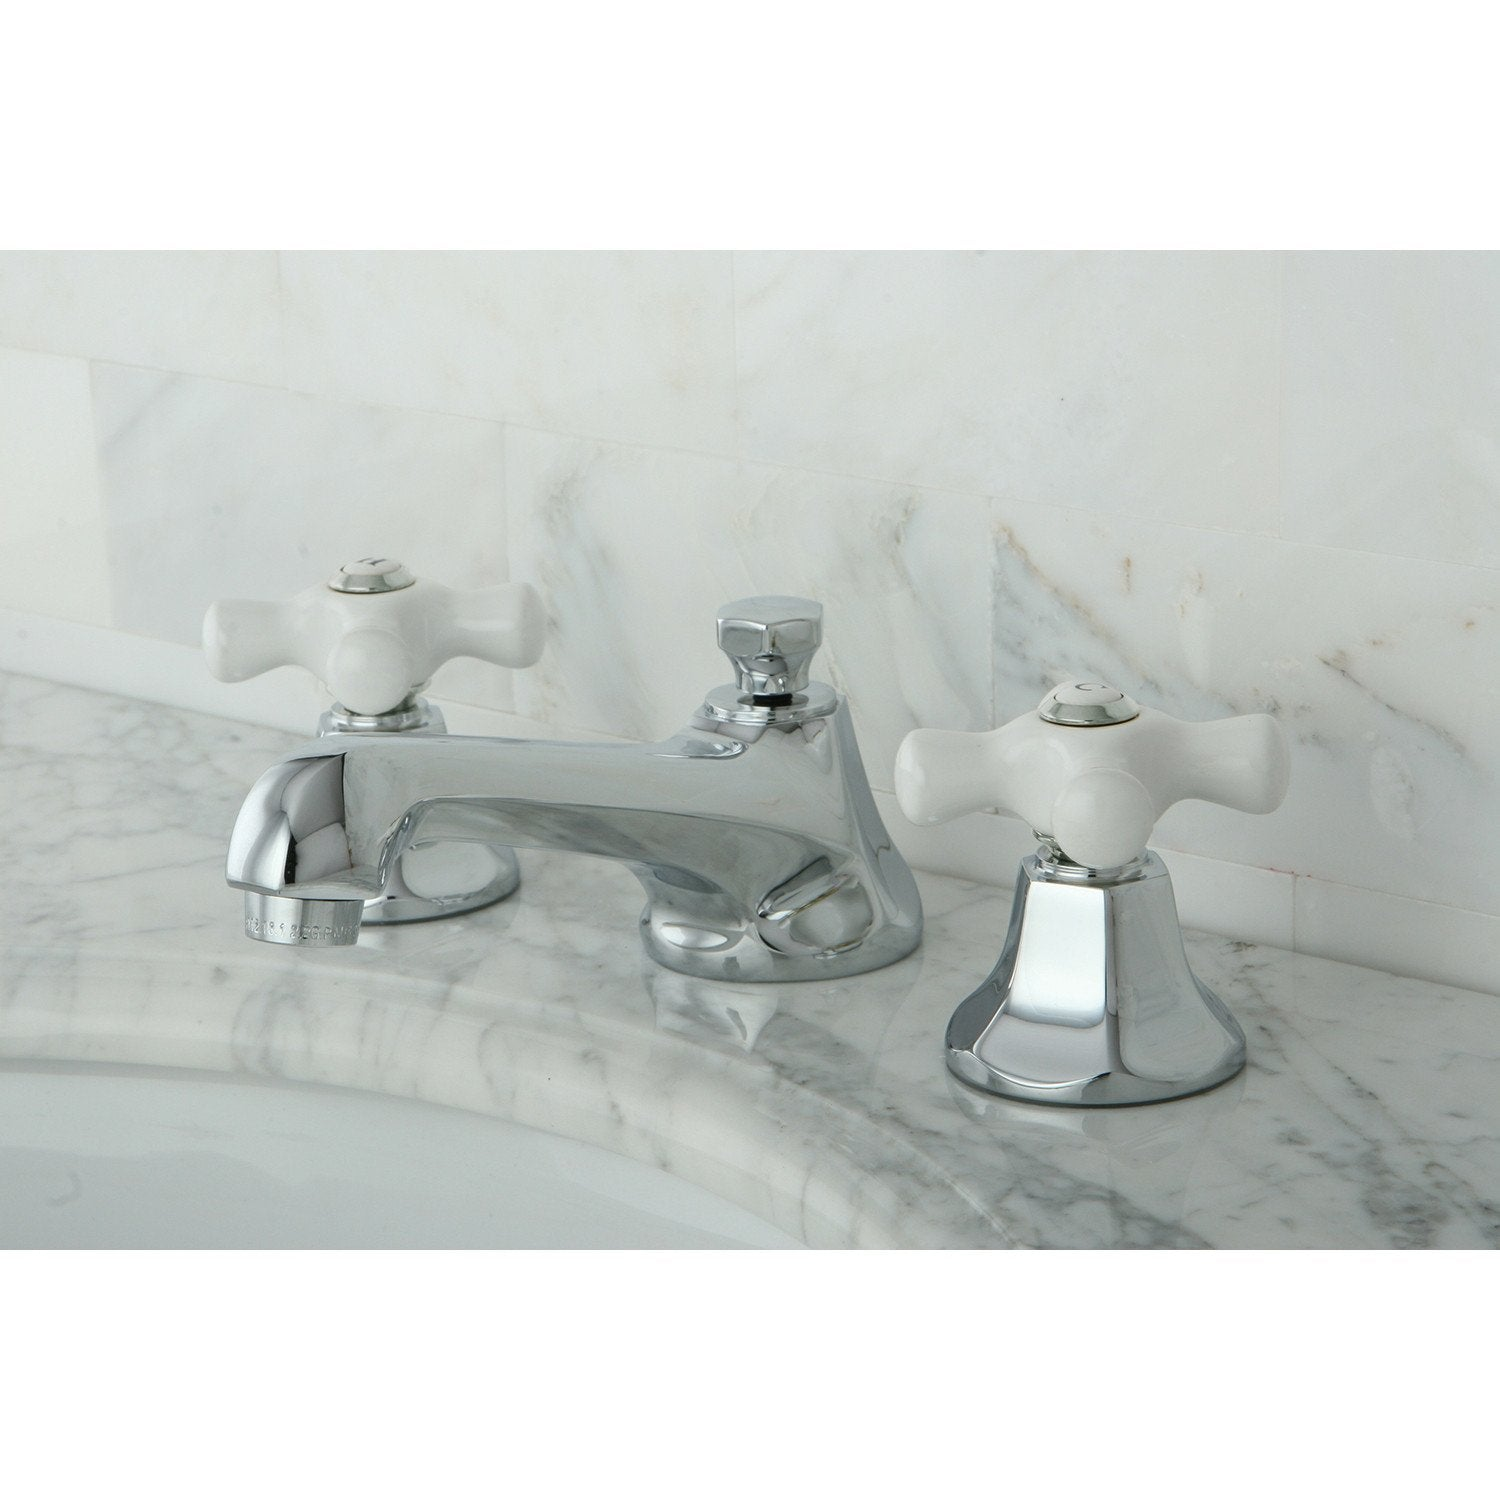 Kingston Brass Chrome 2 Handle Widespread Bathroom Faucet w Pop-up KS4461PX